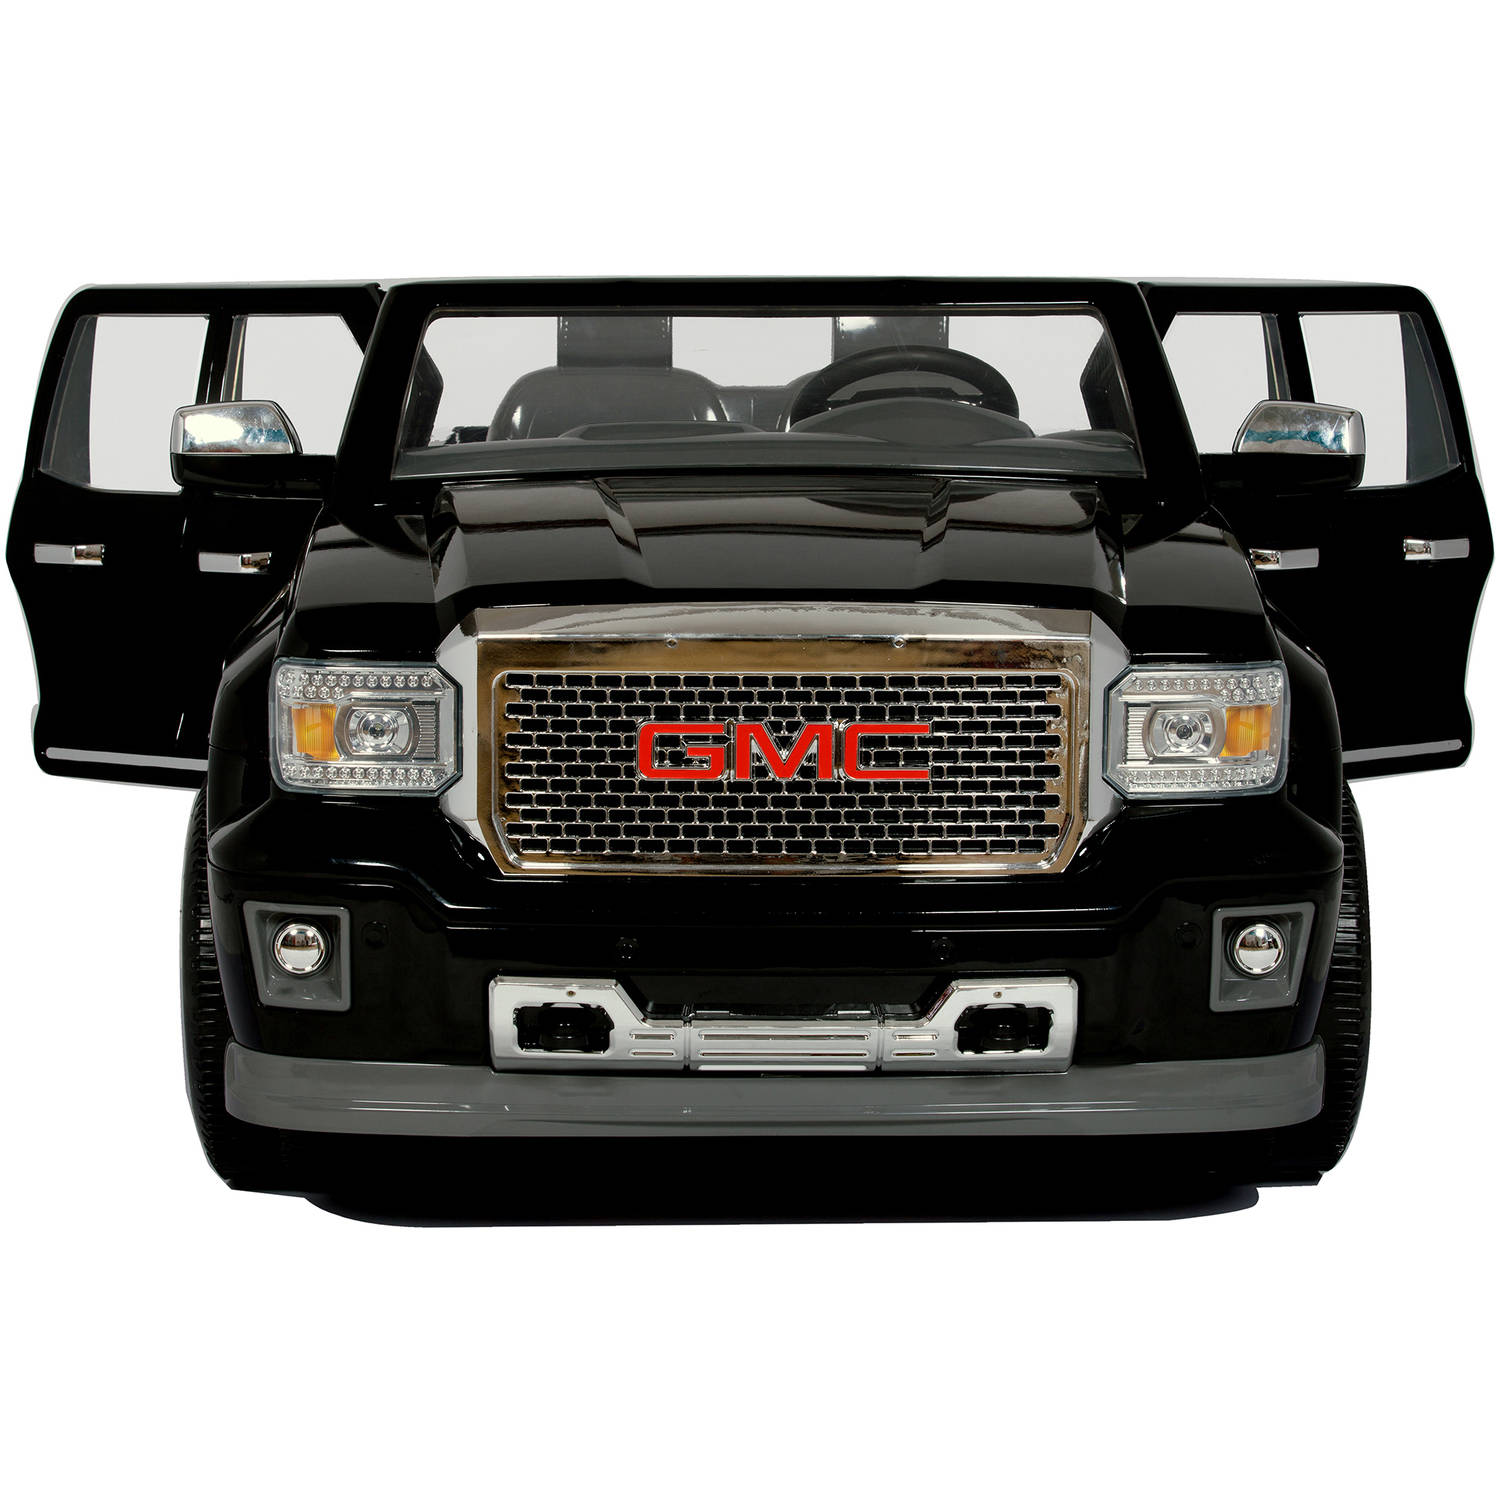 6022e900 ae1d 4685 adcc 9c02f6fb0b46_1.d870a9f503c7958a77ffe10d0e663744 rollplay 12v gmc sierra denali ride on walmart com  at honlapkeszites.co